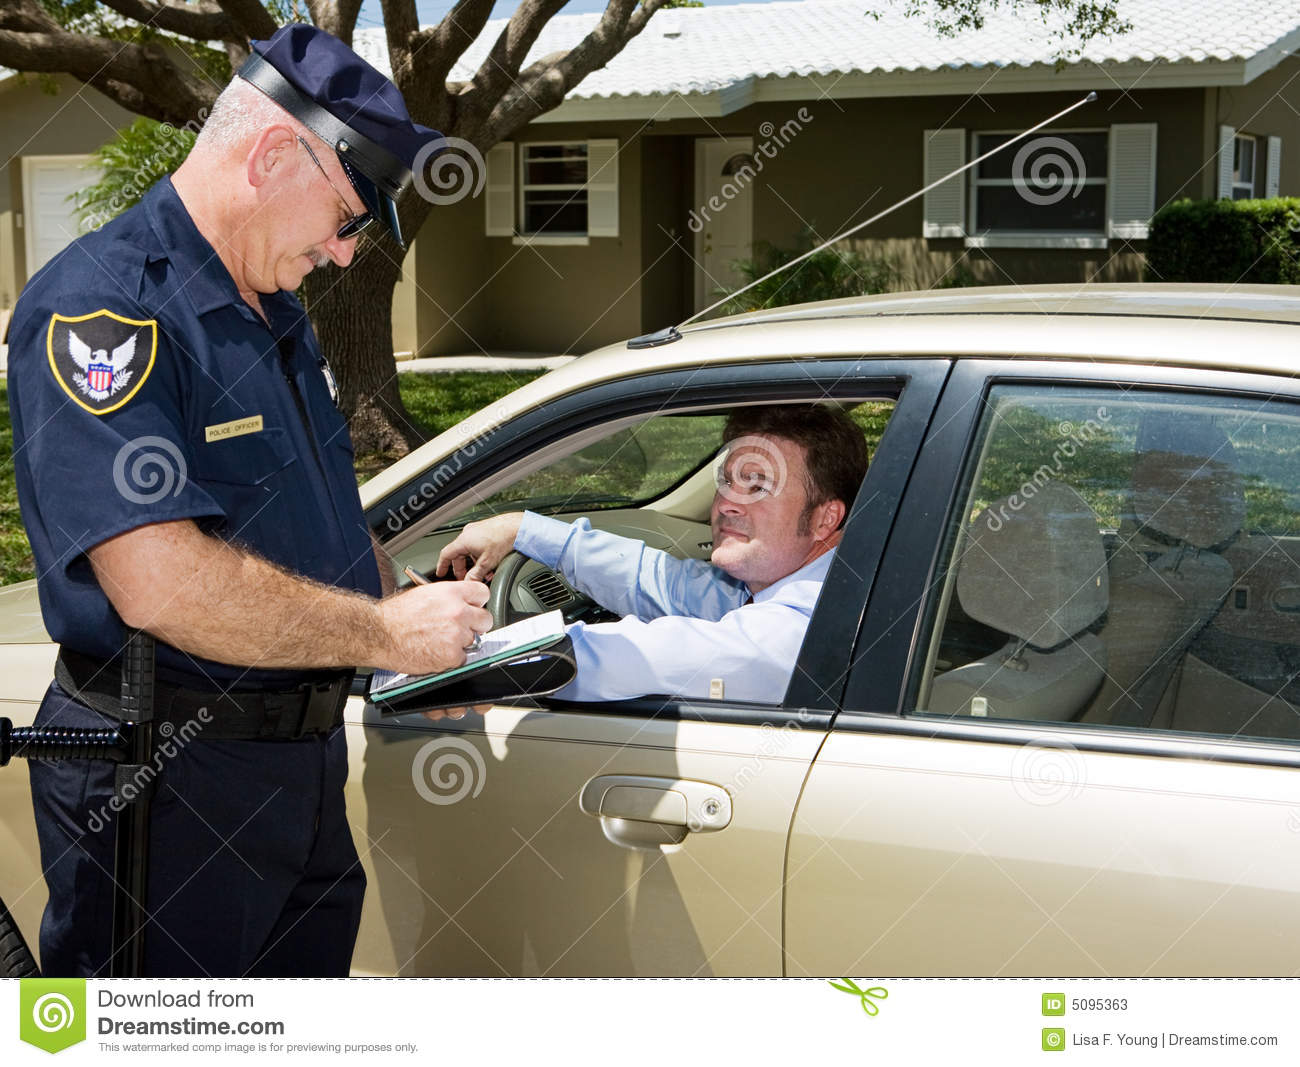 Police officer writing a traffic citation while an unfortunate driver ...